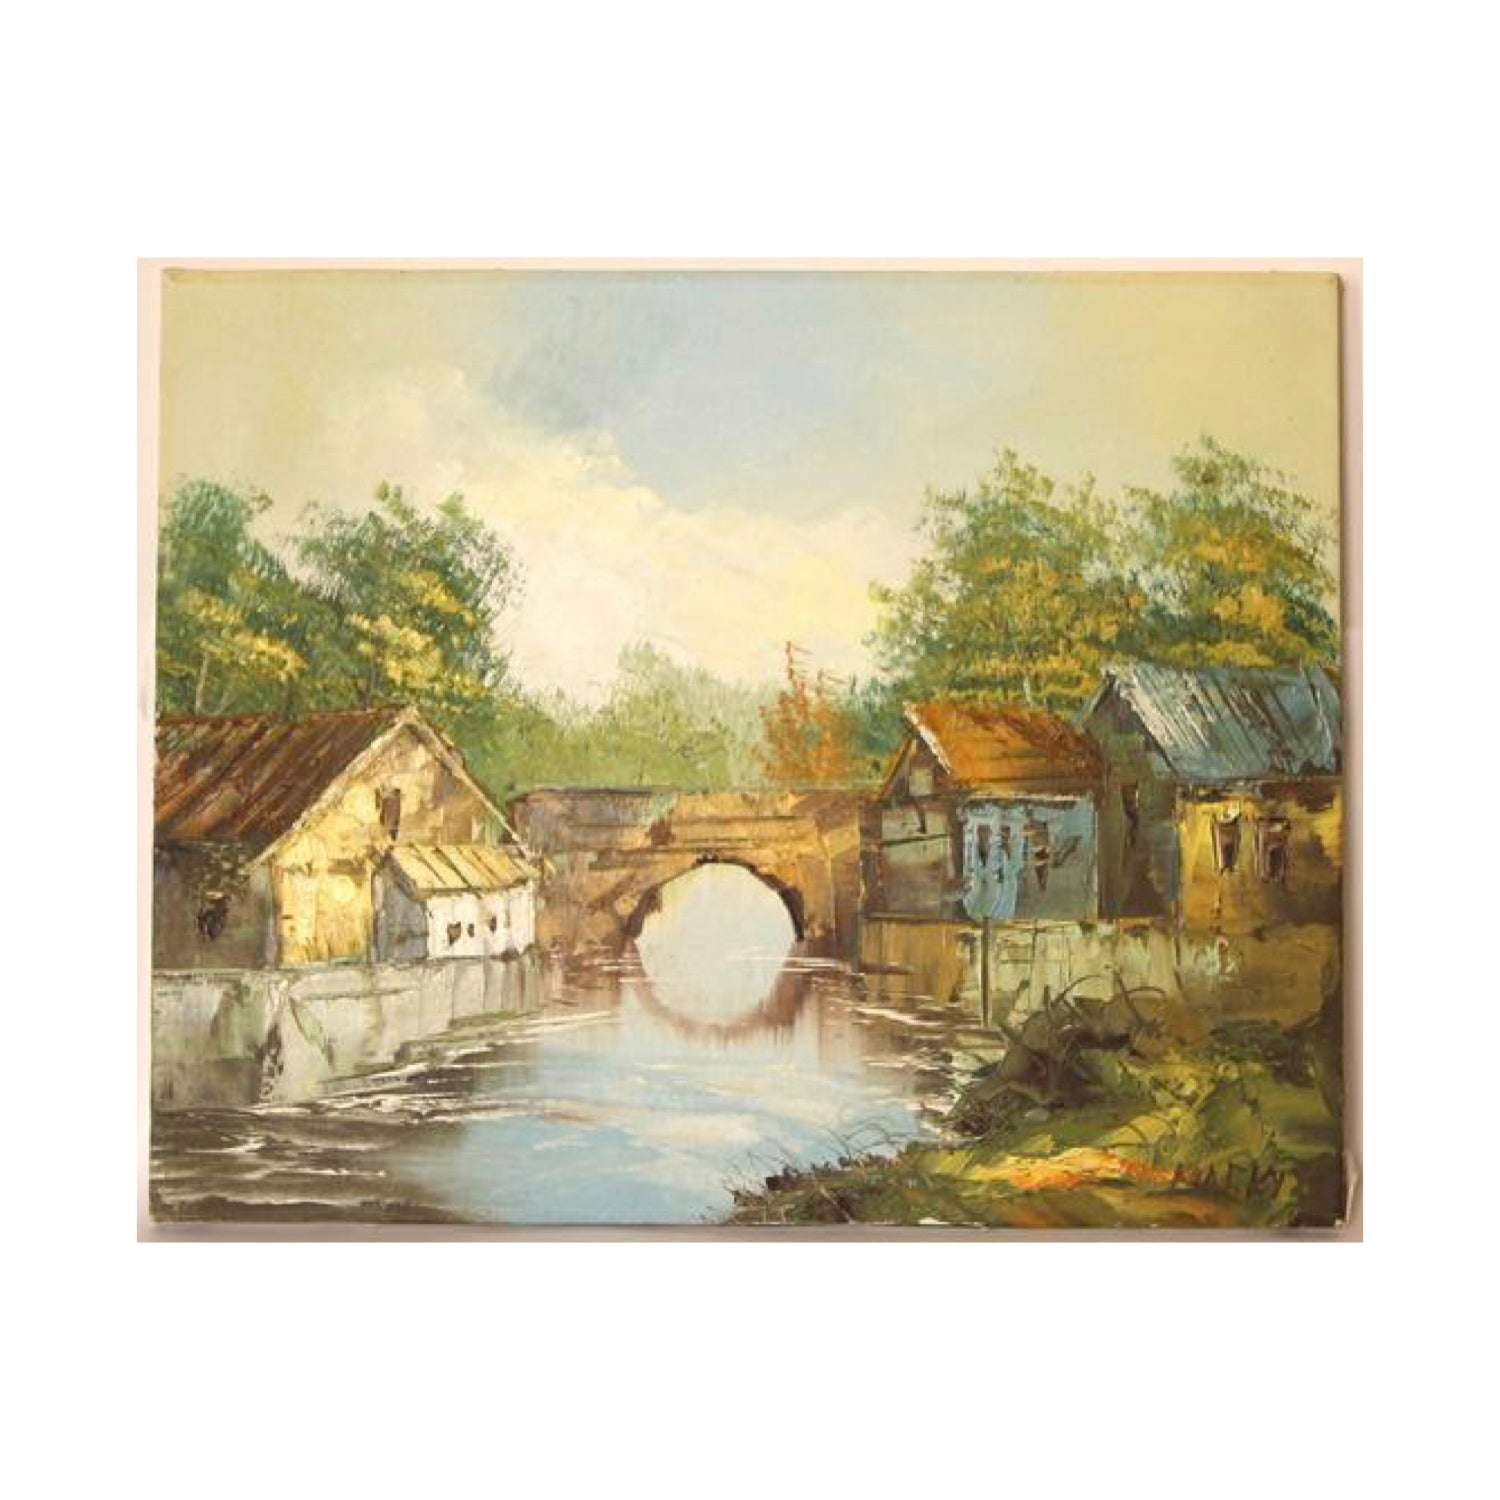 Vintage Painting Country Landscape by Marky